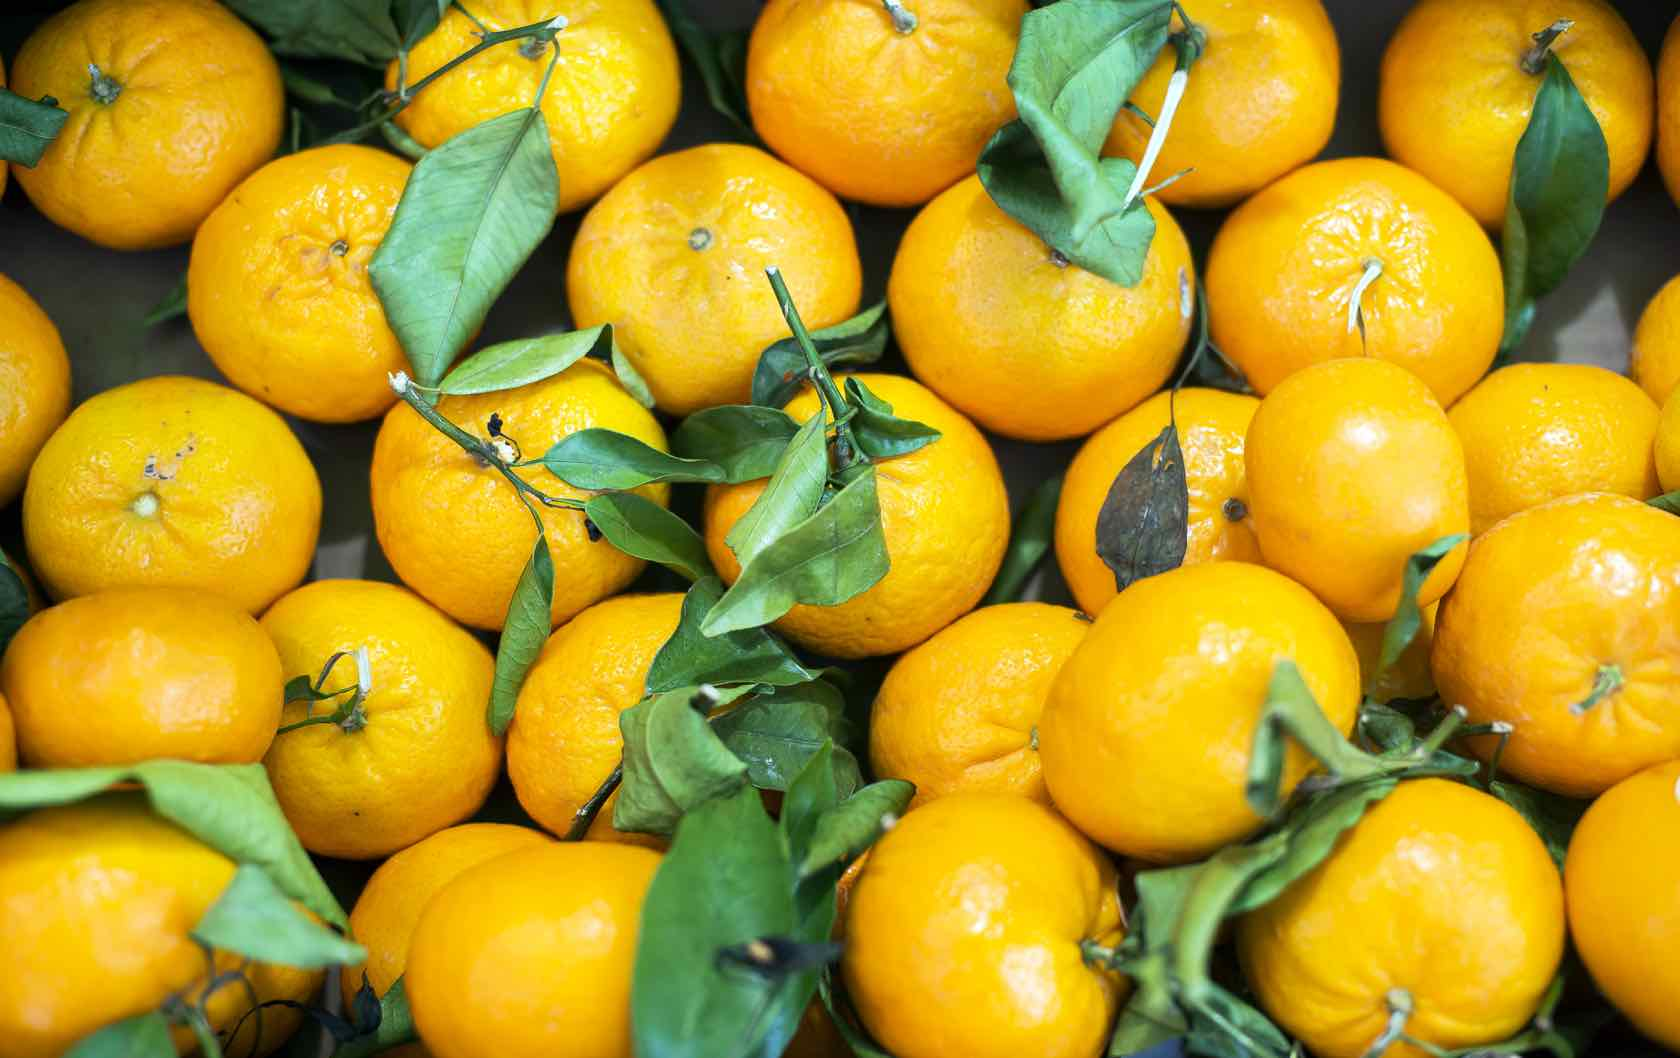 Oranges Market Paris